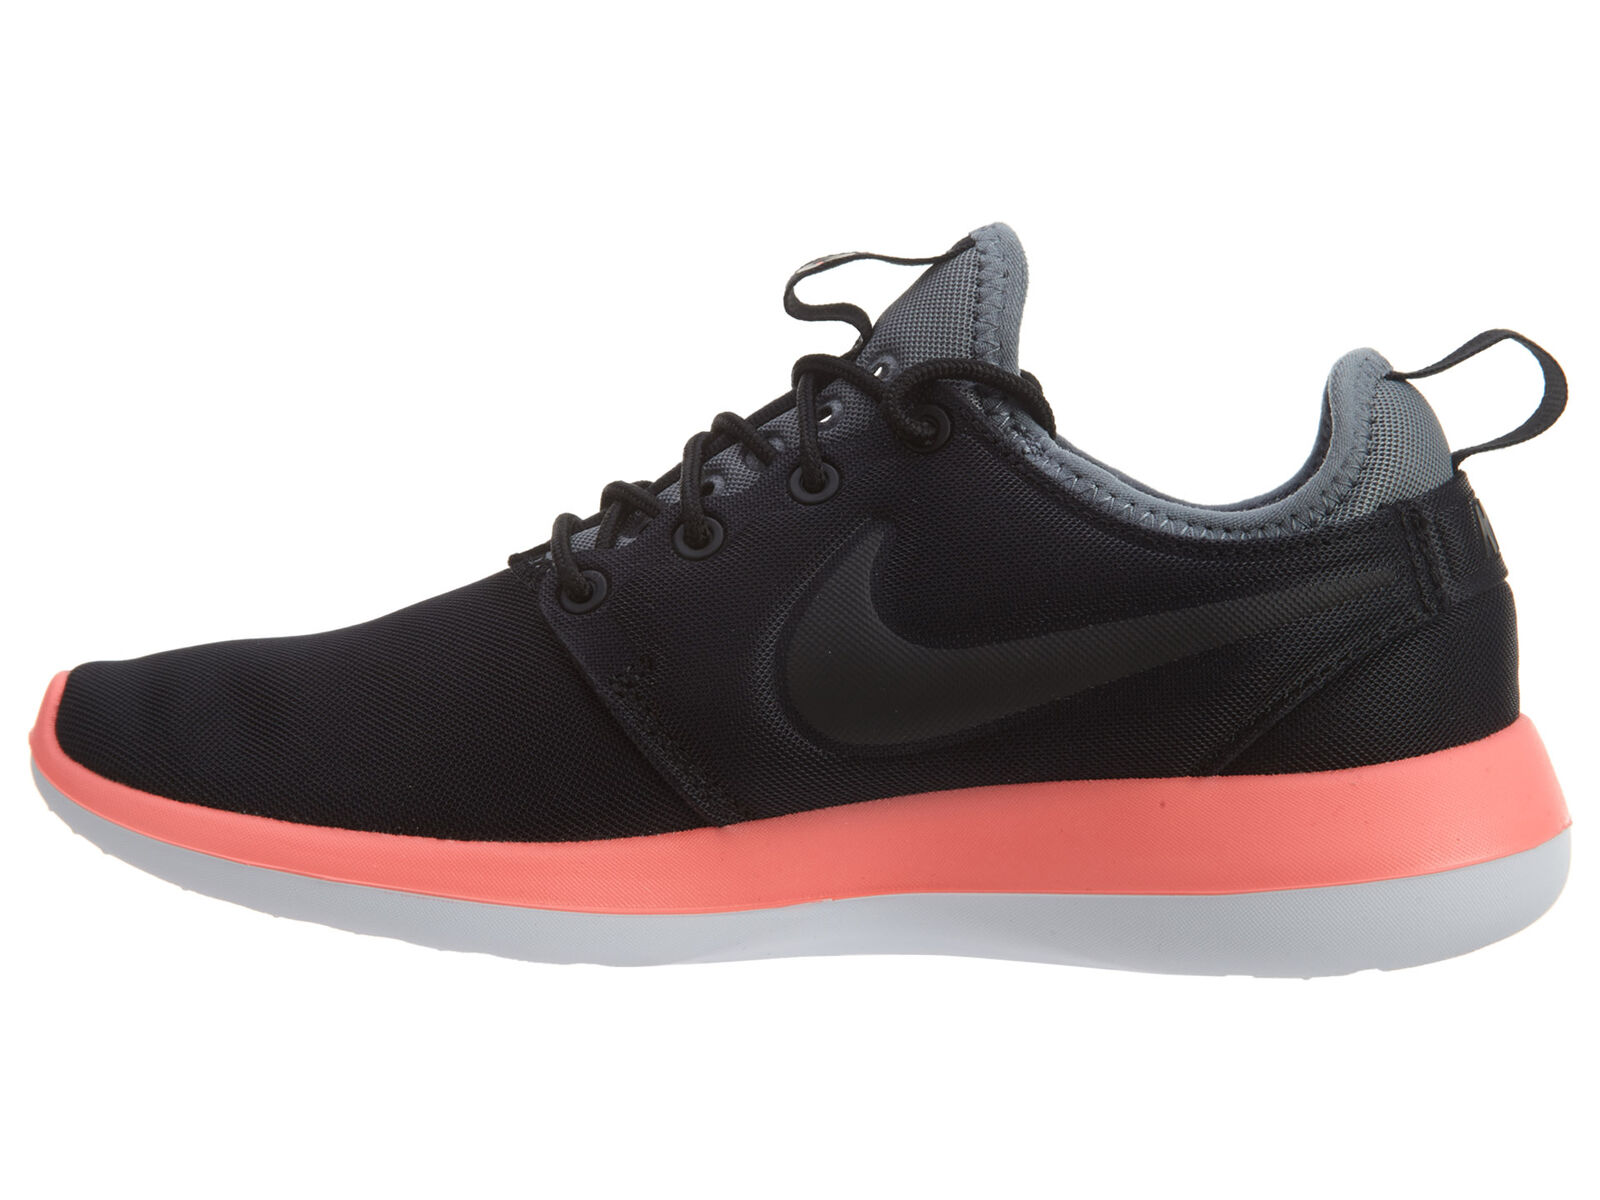 Nike Roshe Two Womens 844931-006 Black Lava Grey Textile Running Running Running shoes Size 6.5 e3c9c3